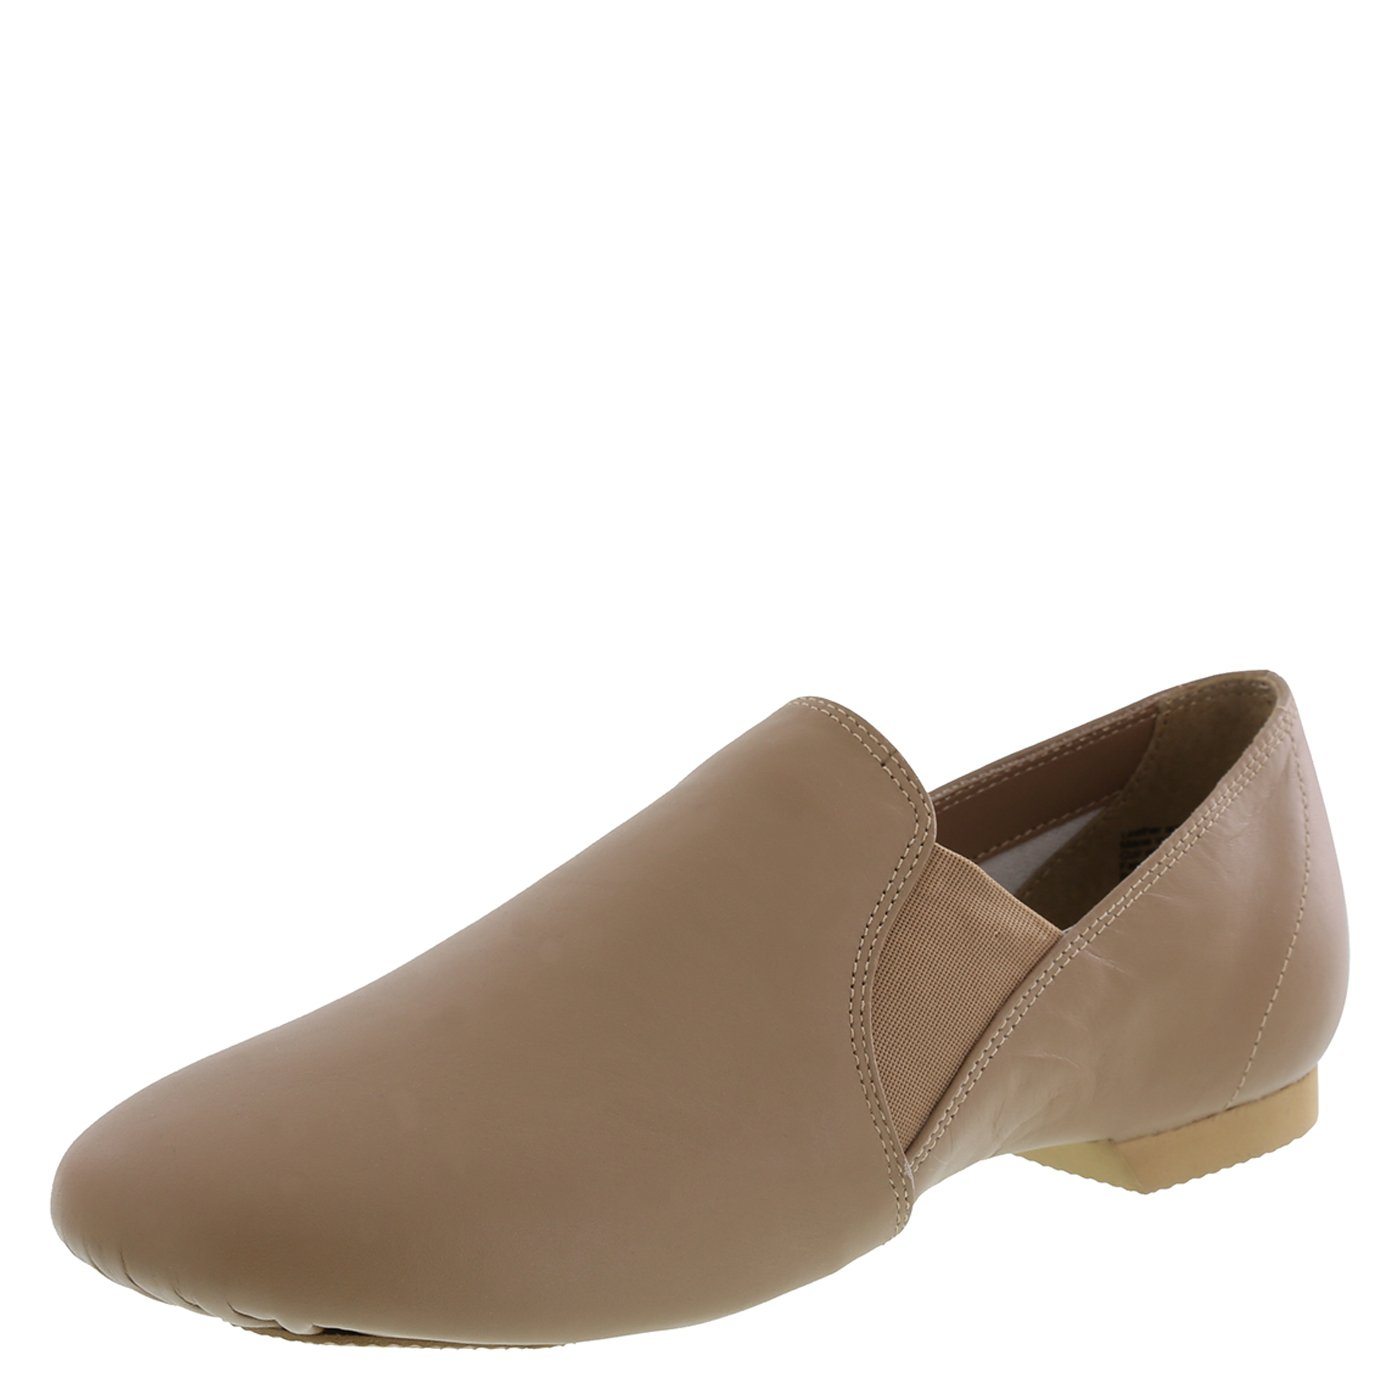 American Ballet Theatre for Spotlights Girls' Tan Girls' Twin Gore Jazz Shoe 3.5 Regular